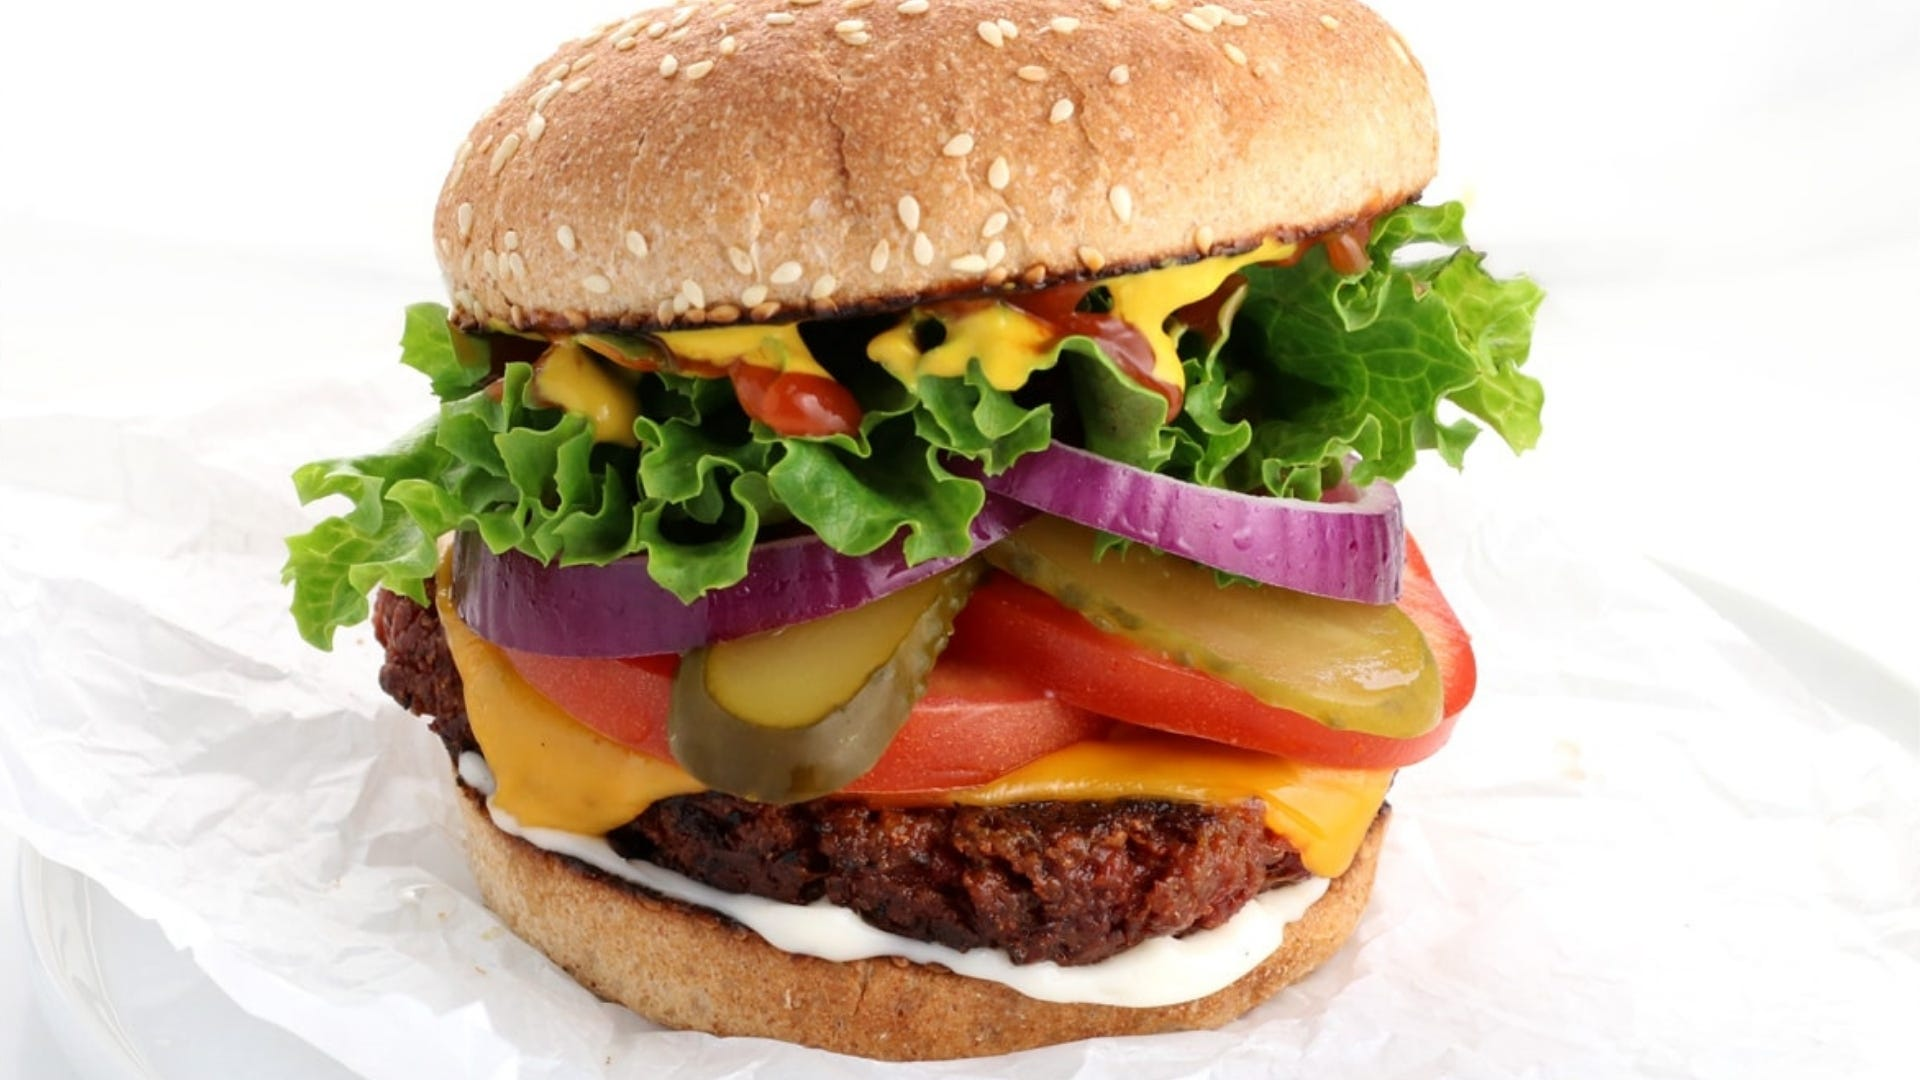 Vegan burger on white background